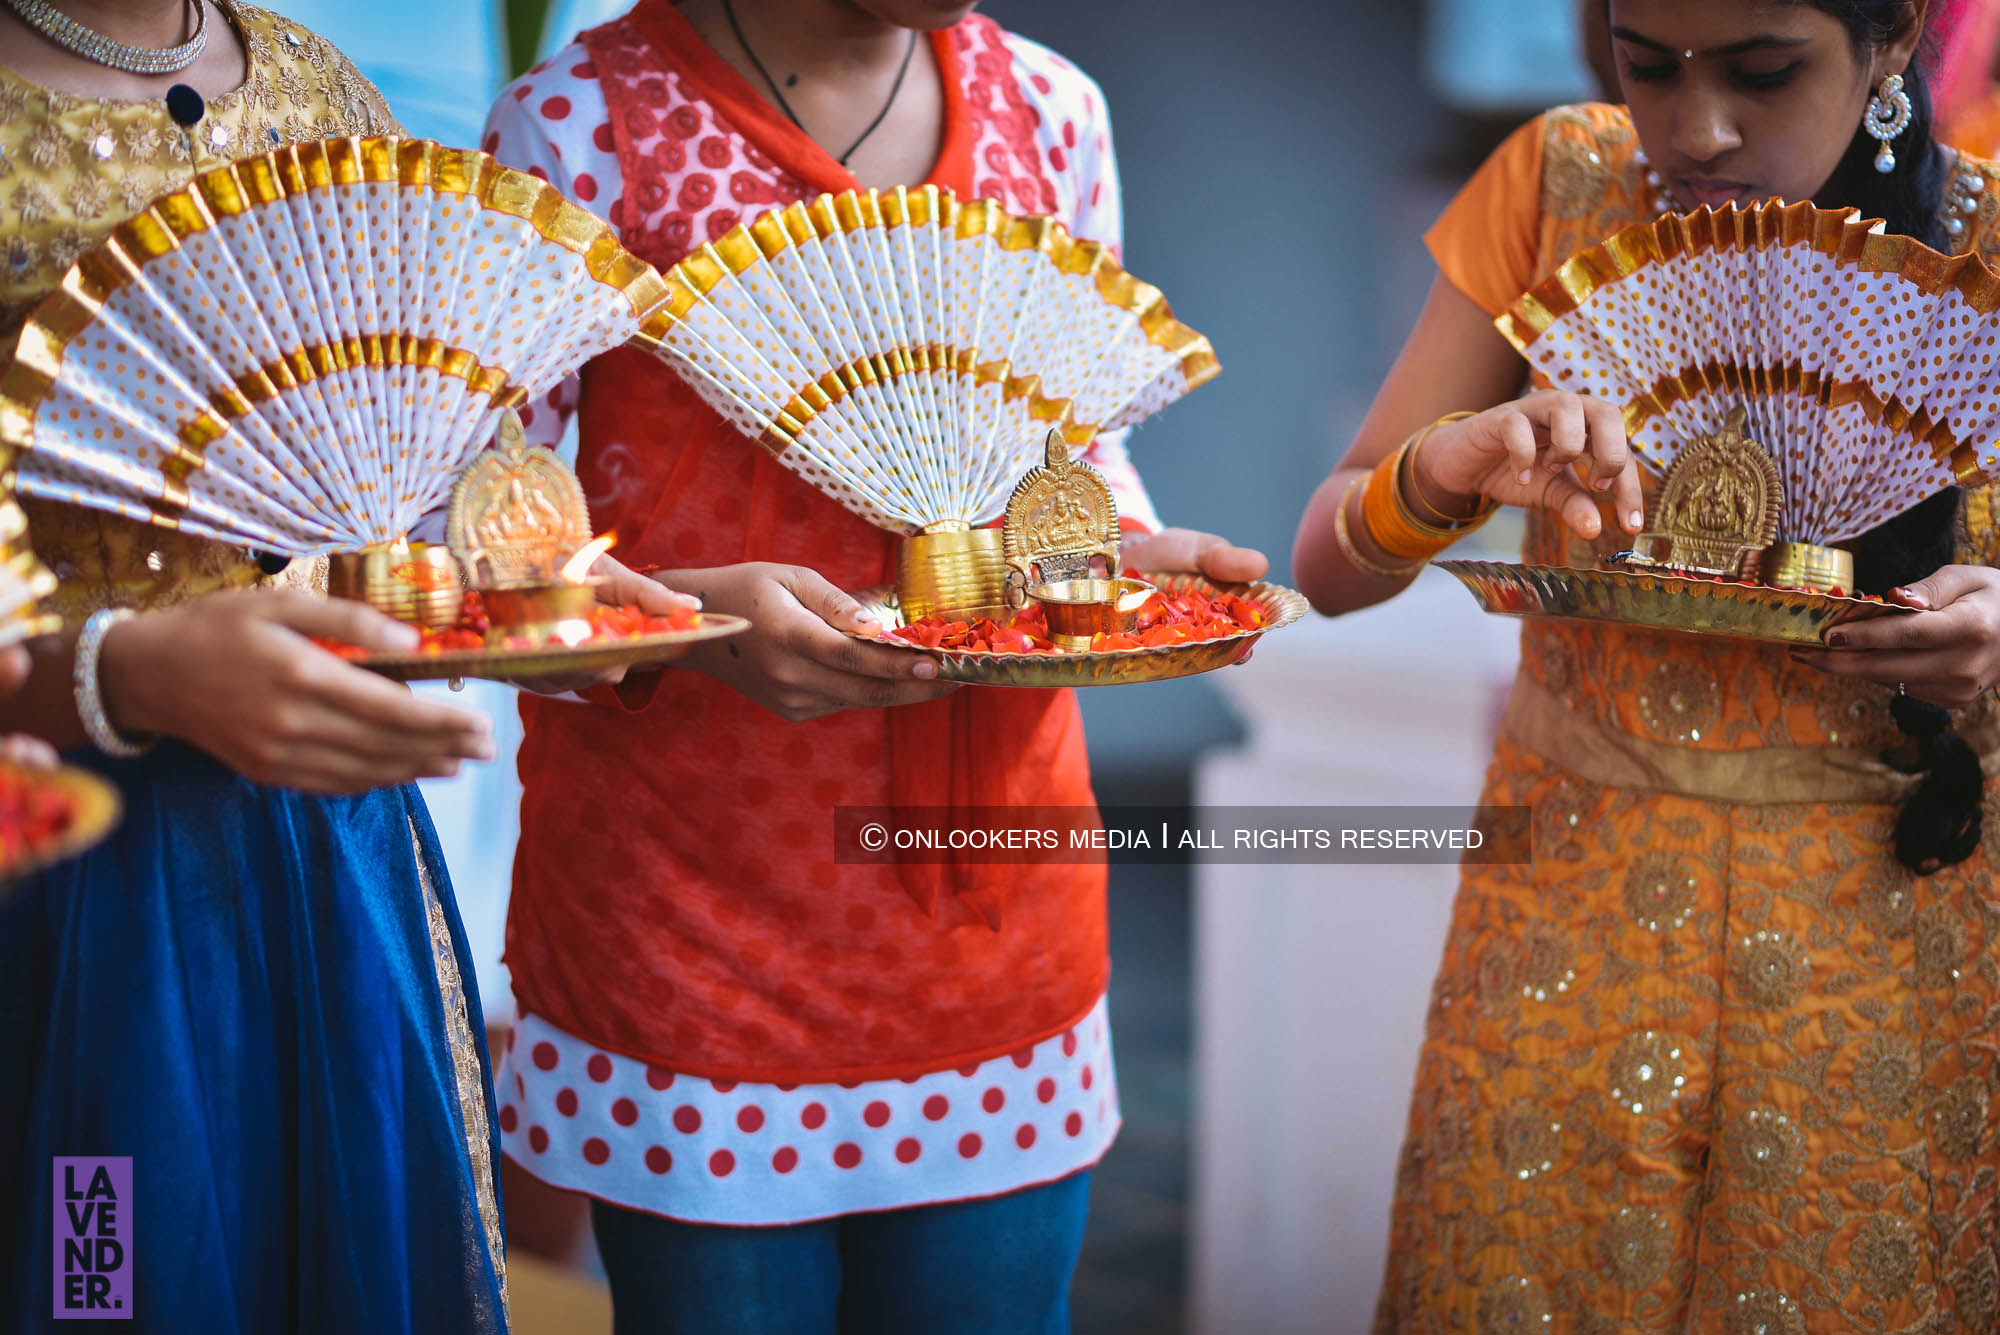 http://onlookersmedia.in/wp-content/uploads/2018/05/sreejith-vijay-wedding-stills-images-7.jpg